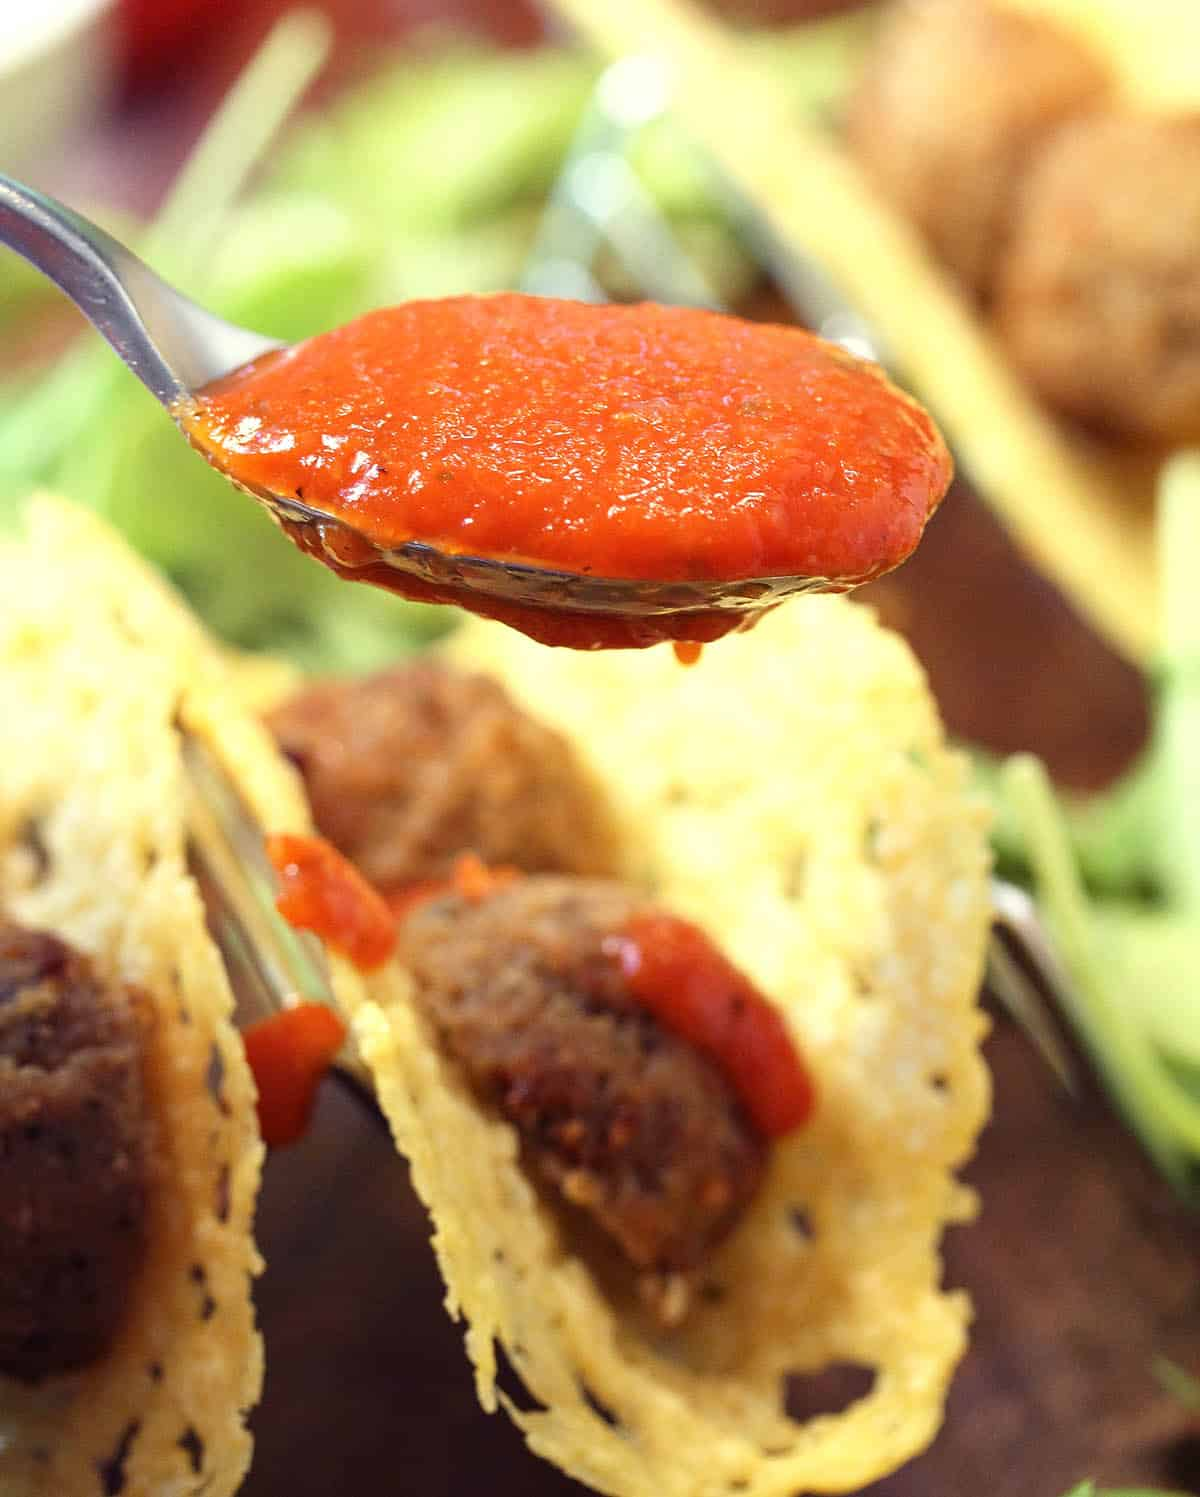 Closeup spoonful of Prego sauce over meatball tacos.